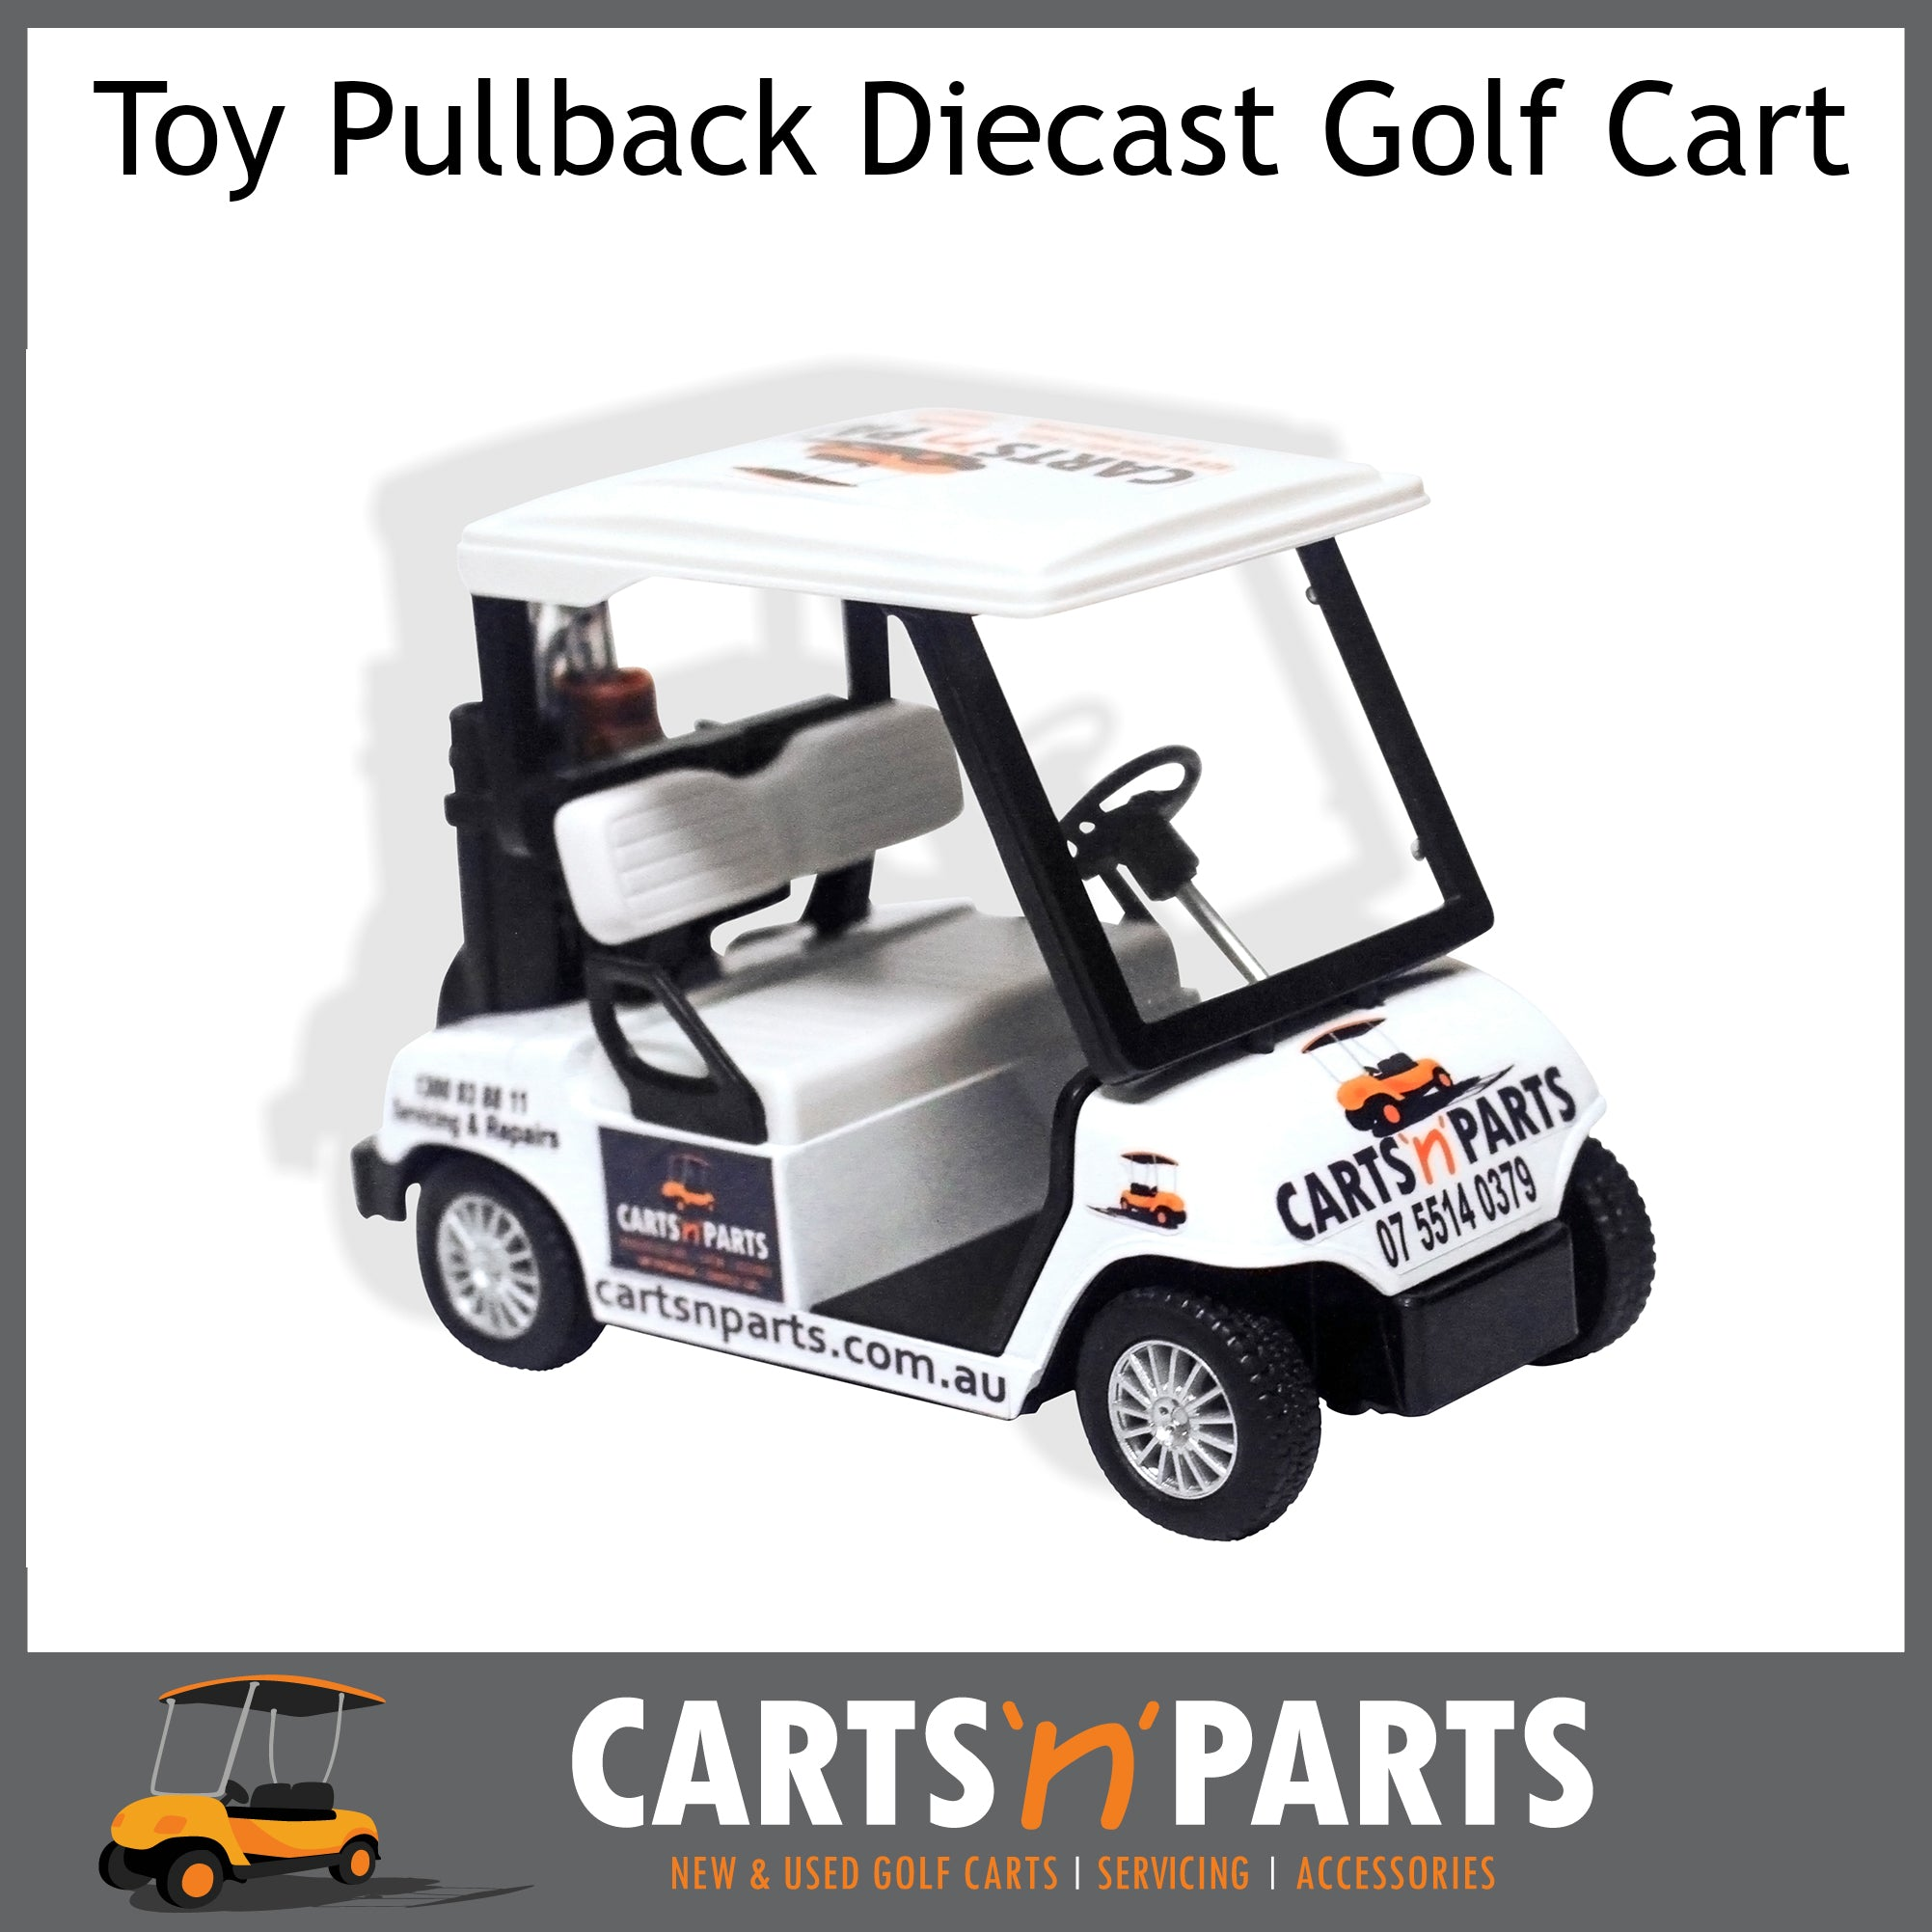 TOY Golf Cart pull back Diecast motor CARTSNPARTS